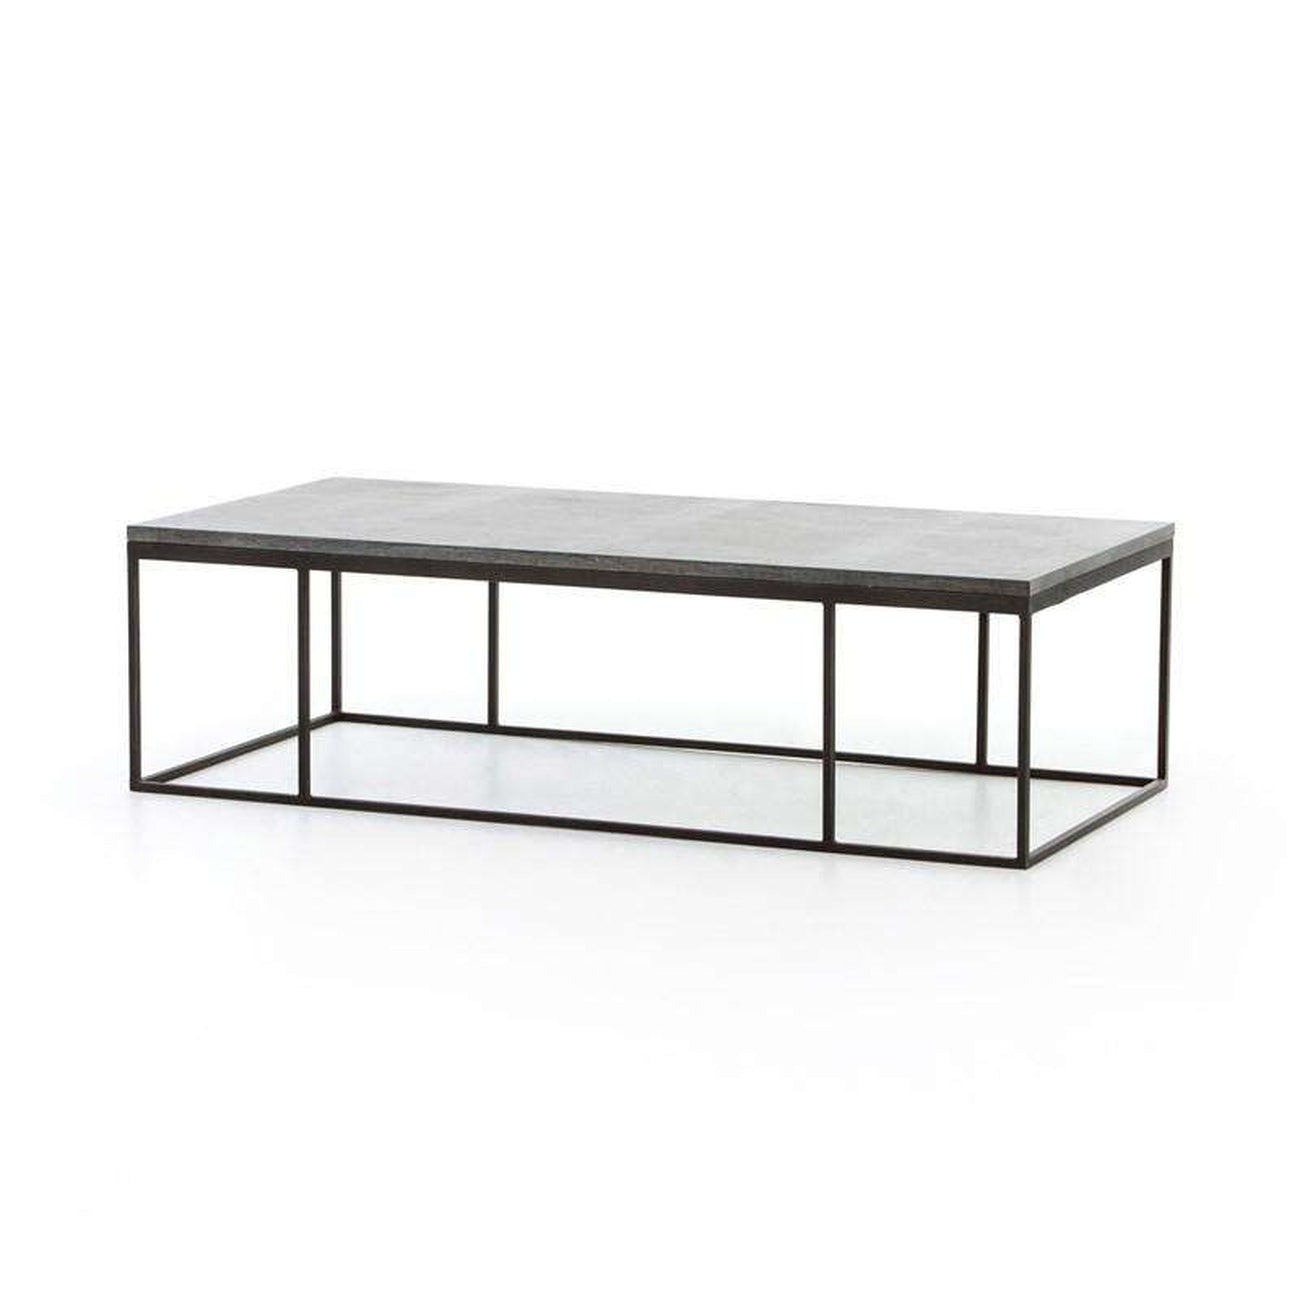 French Connection Gunmetal Coffee Table: HARLOW SMALL COFFEE TABLE